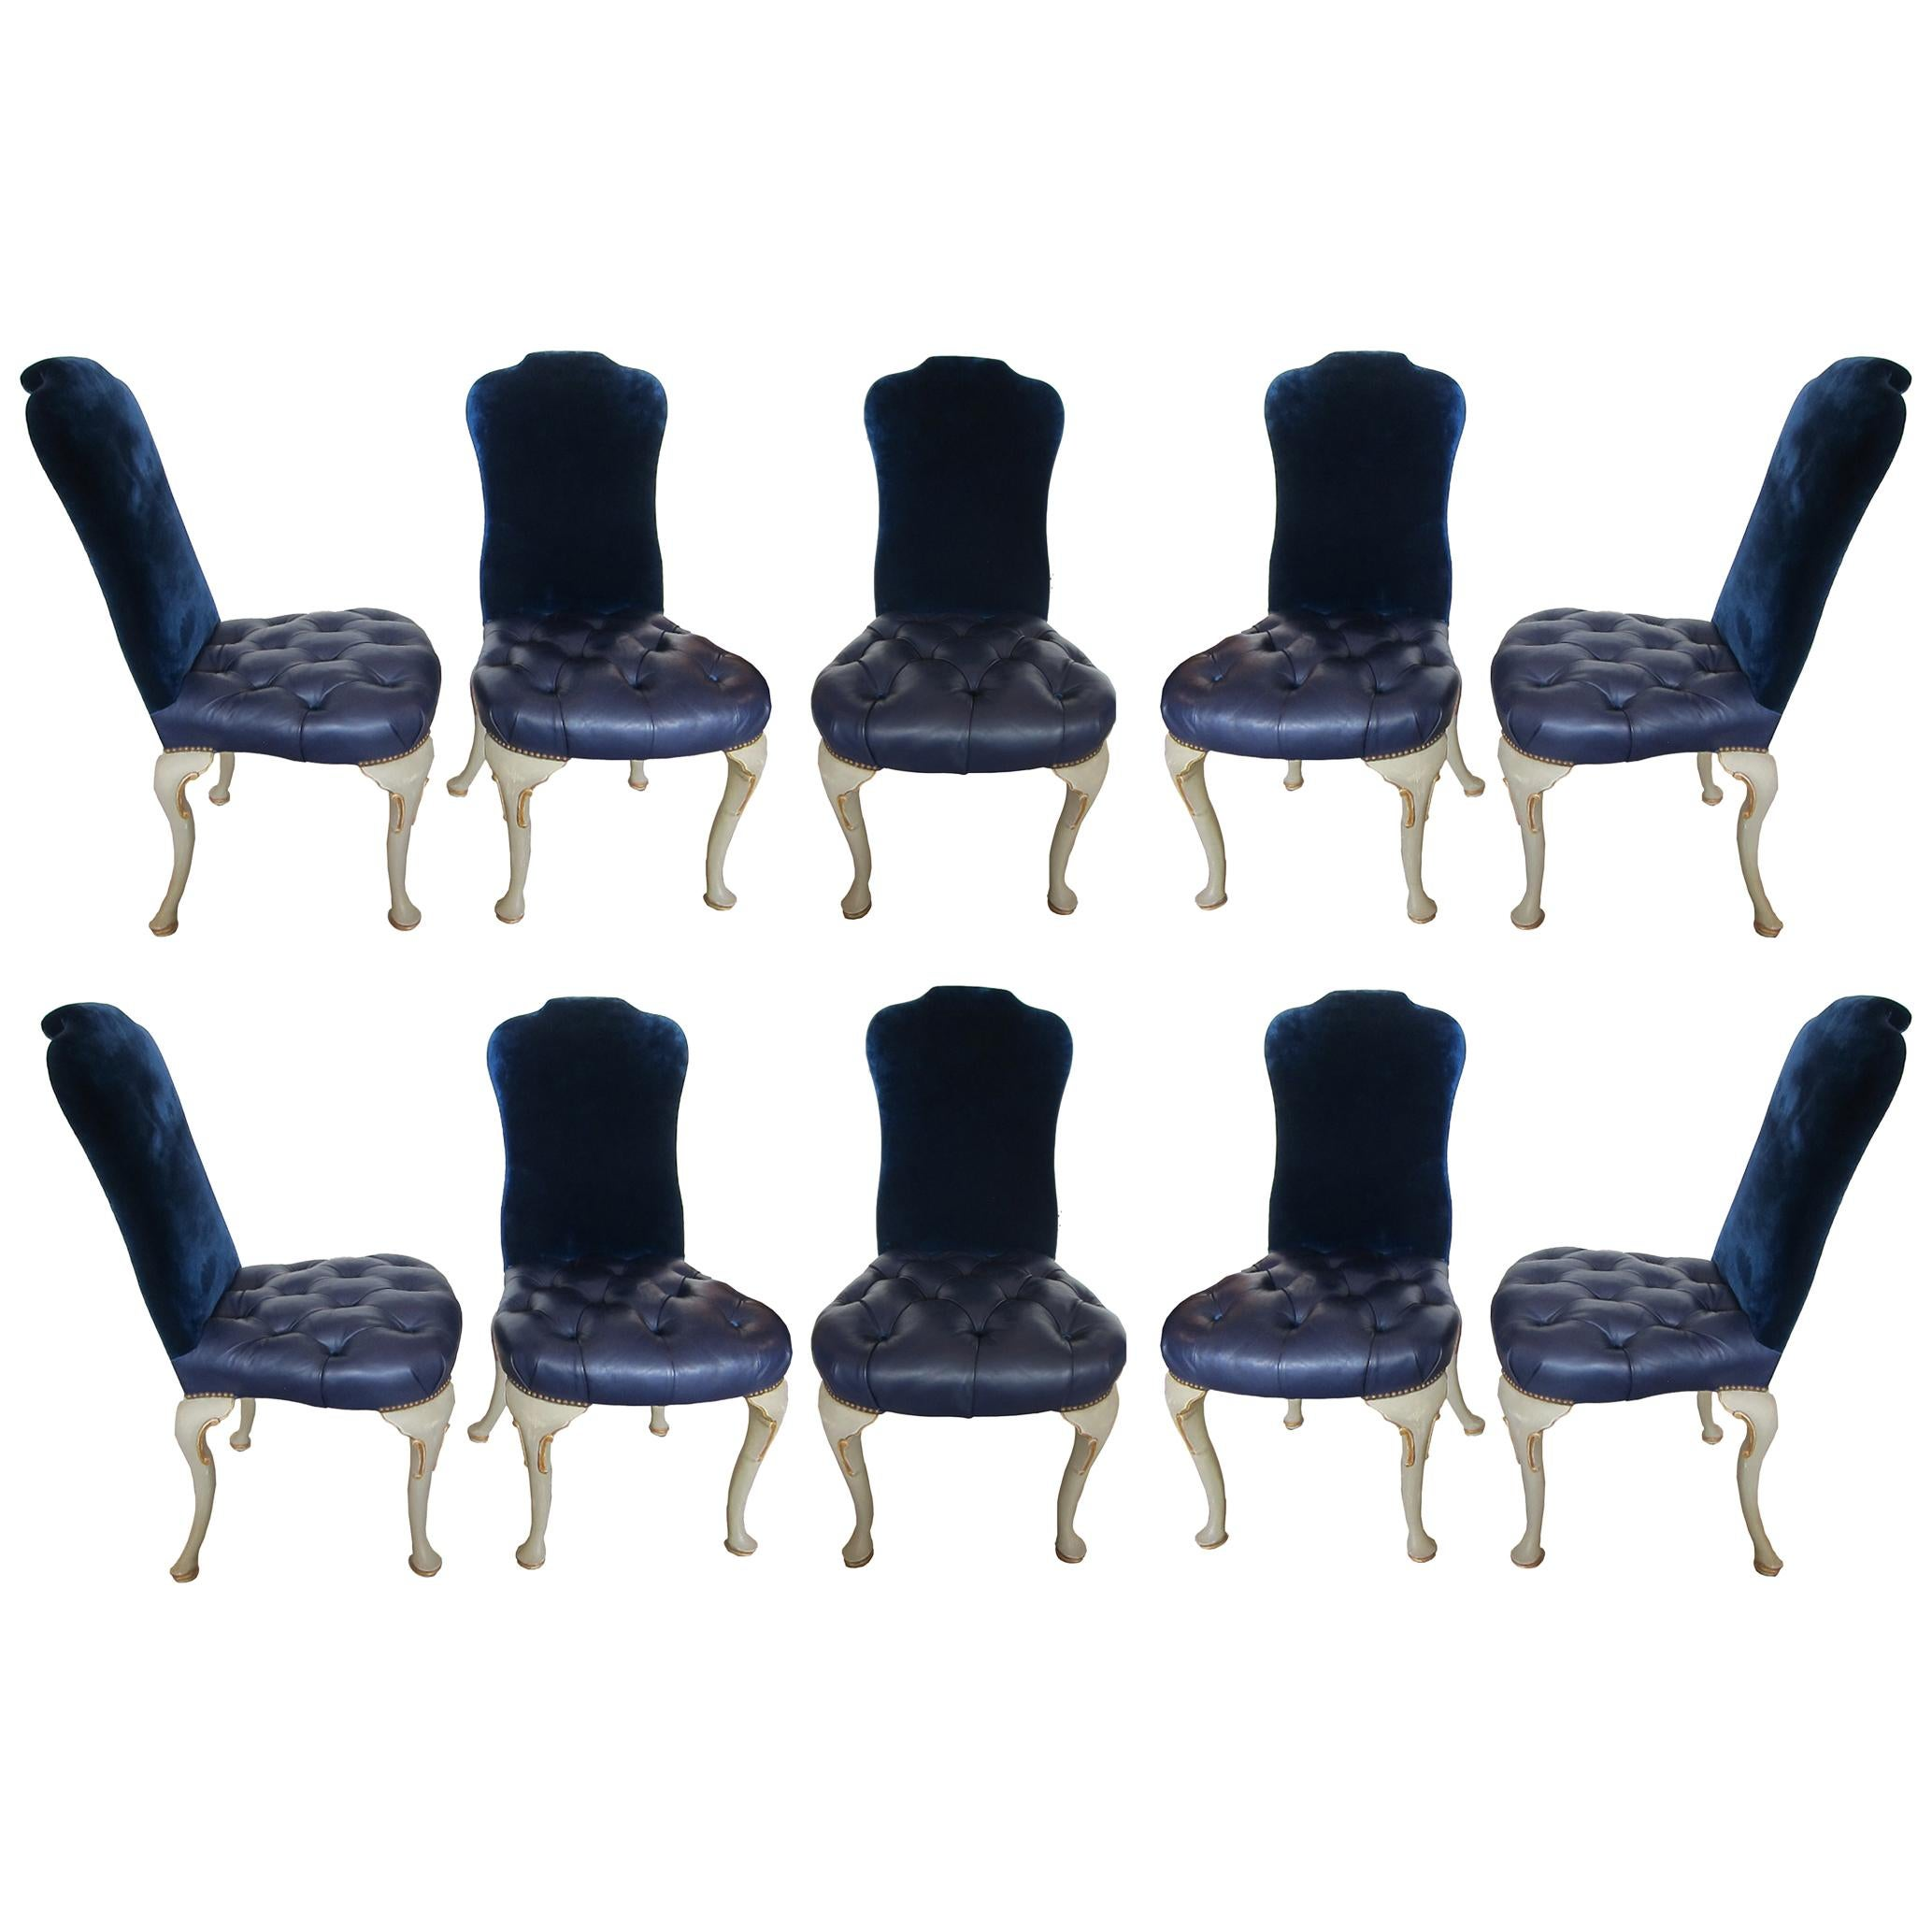 Set of 10 Dining Chairs Queen Anne Style